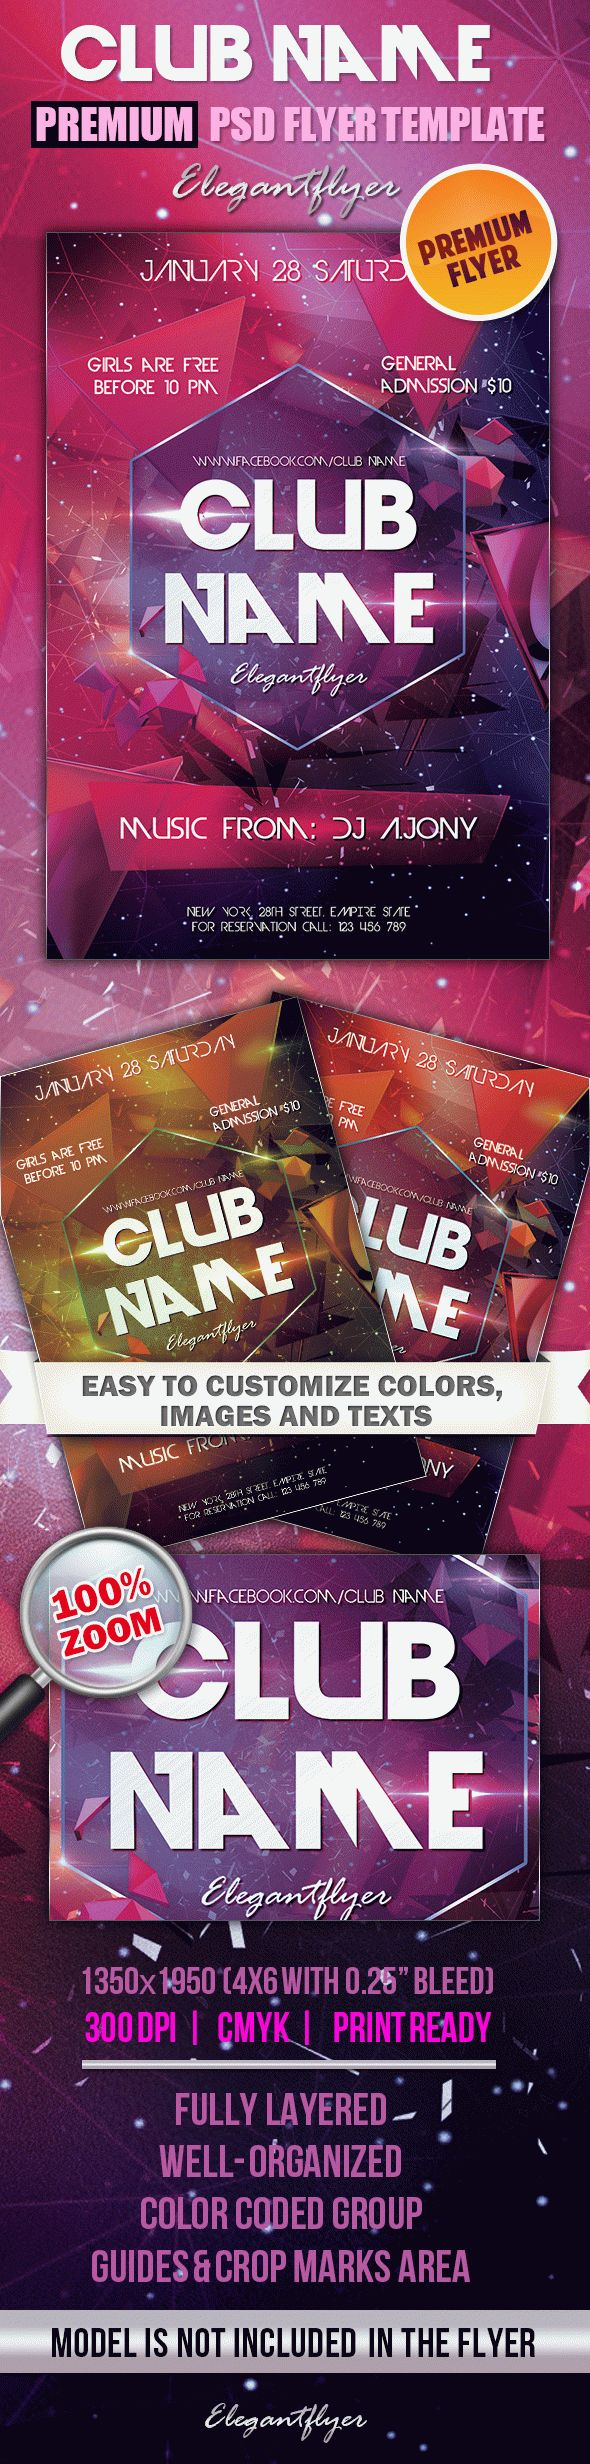 Club Name – Premium Club flyer PSD Template